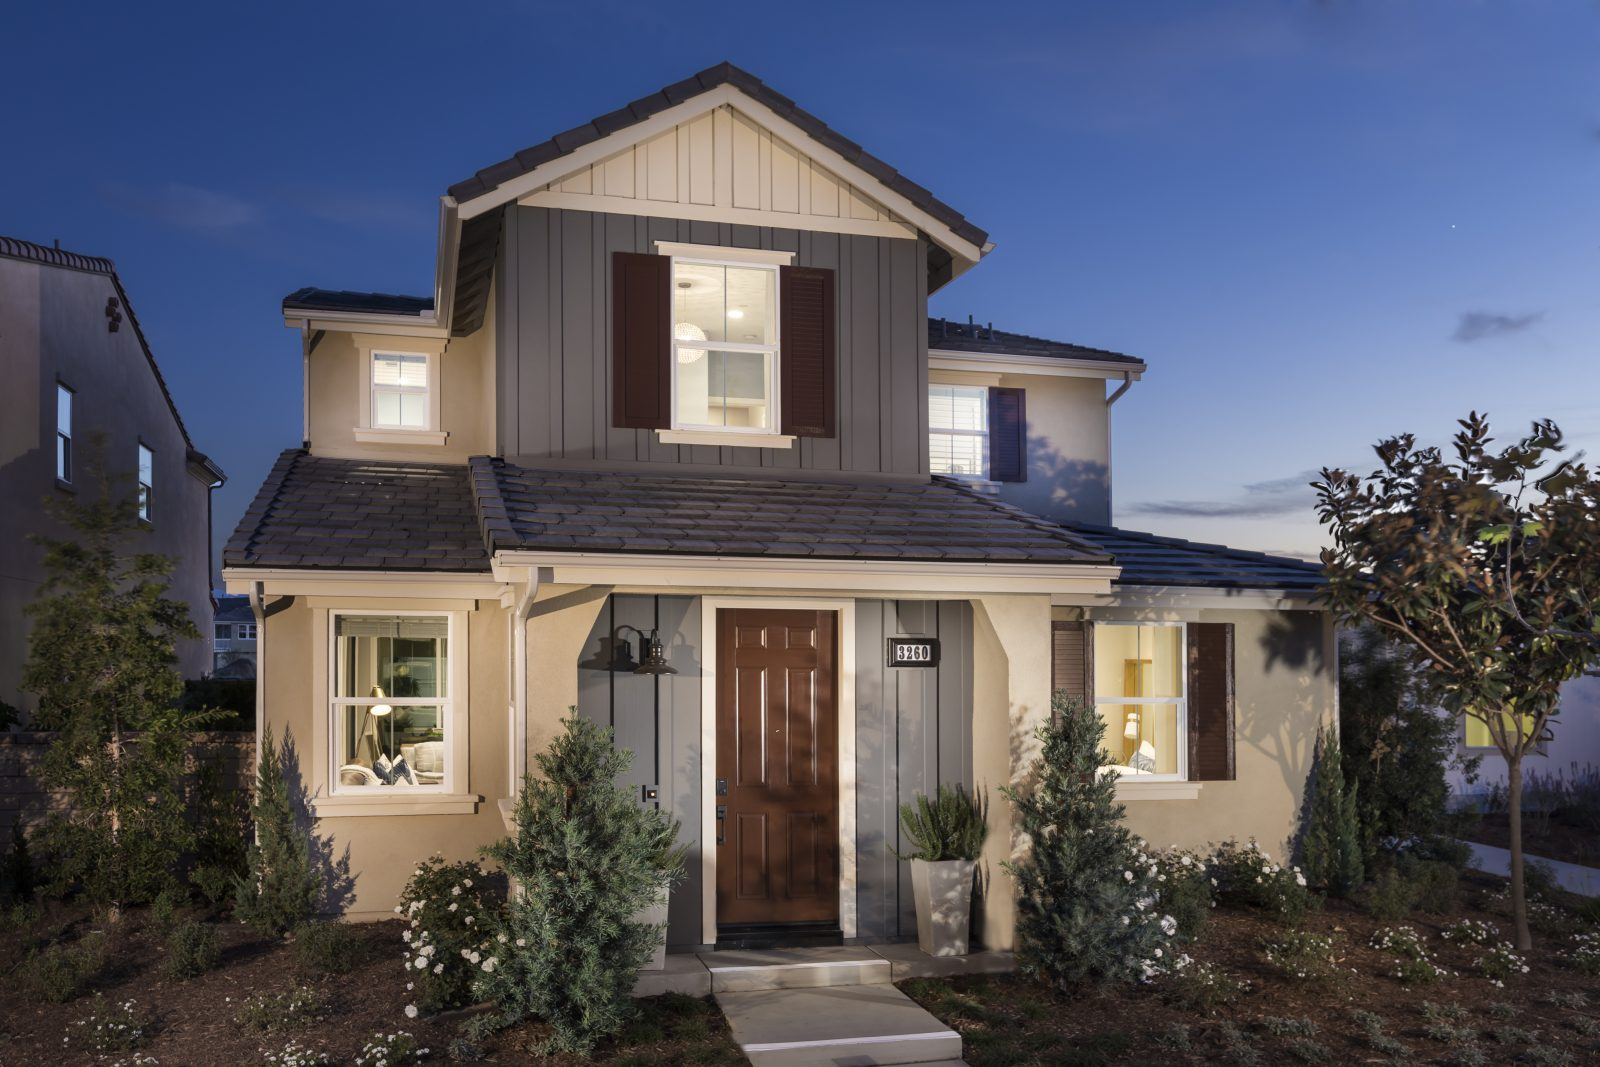 Homes For Sale In Ontario Ranch Arborel At New Haven Aluminum Wiring California Exterior Aborel Ca Brookfield Residential